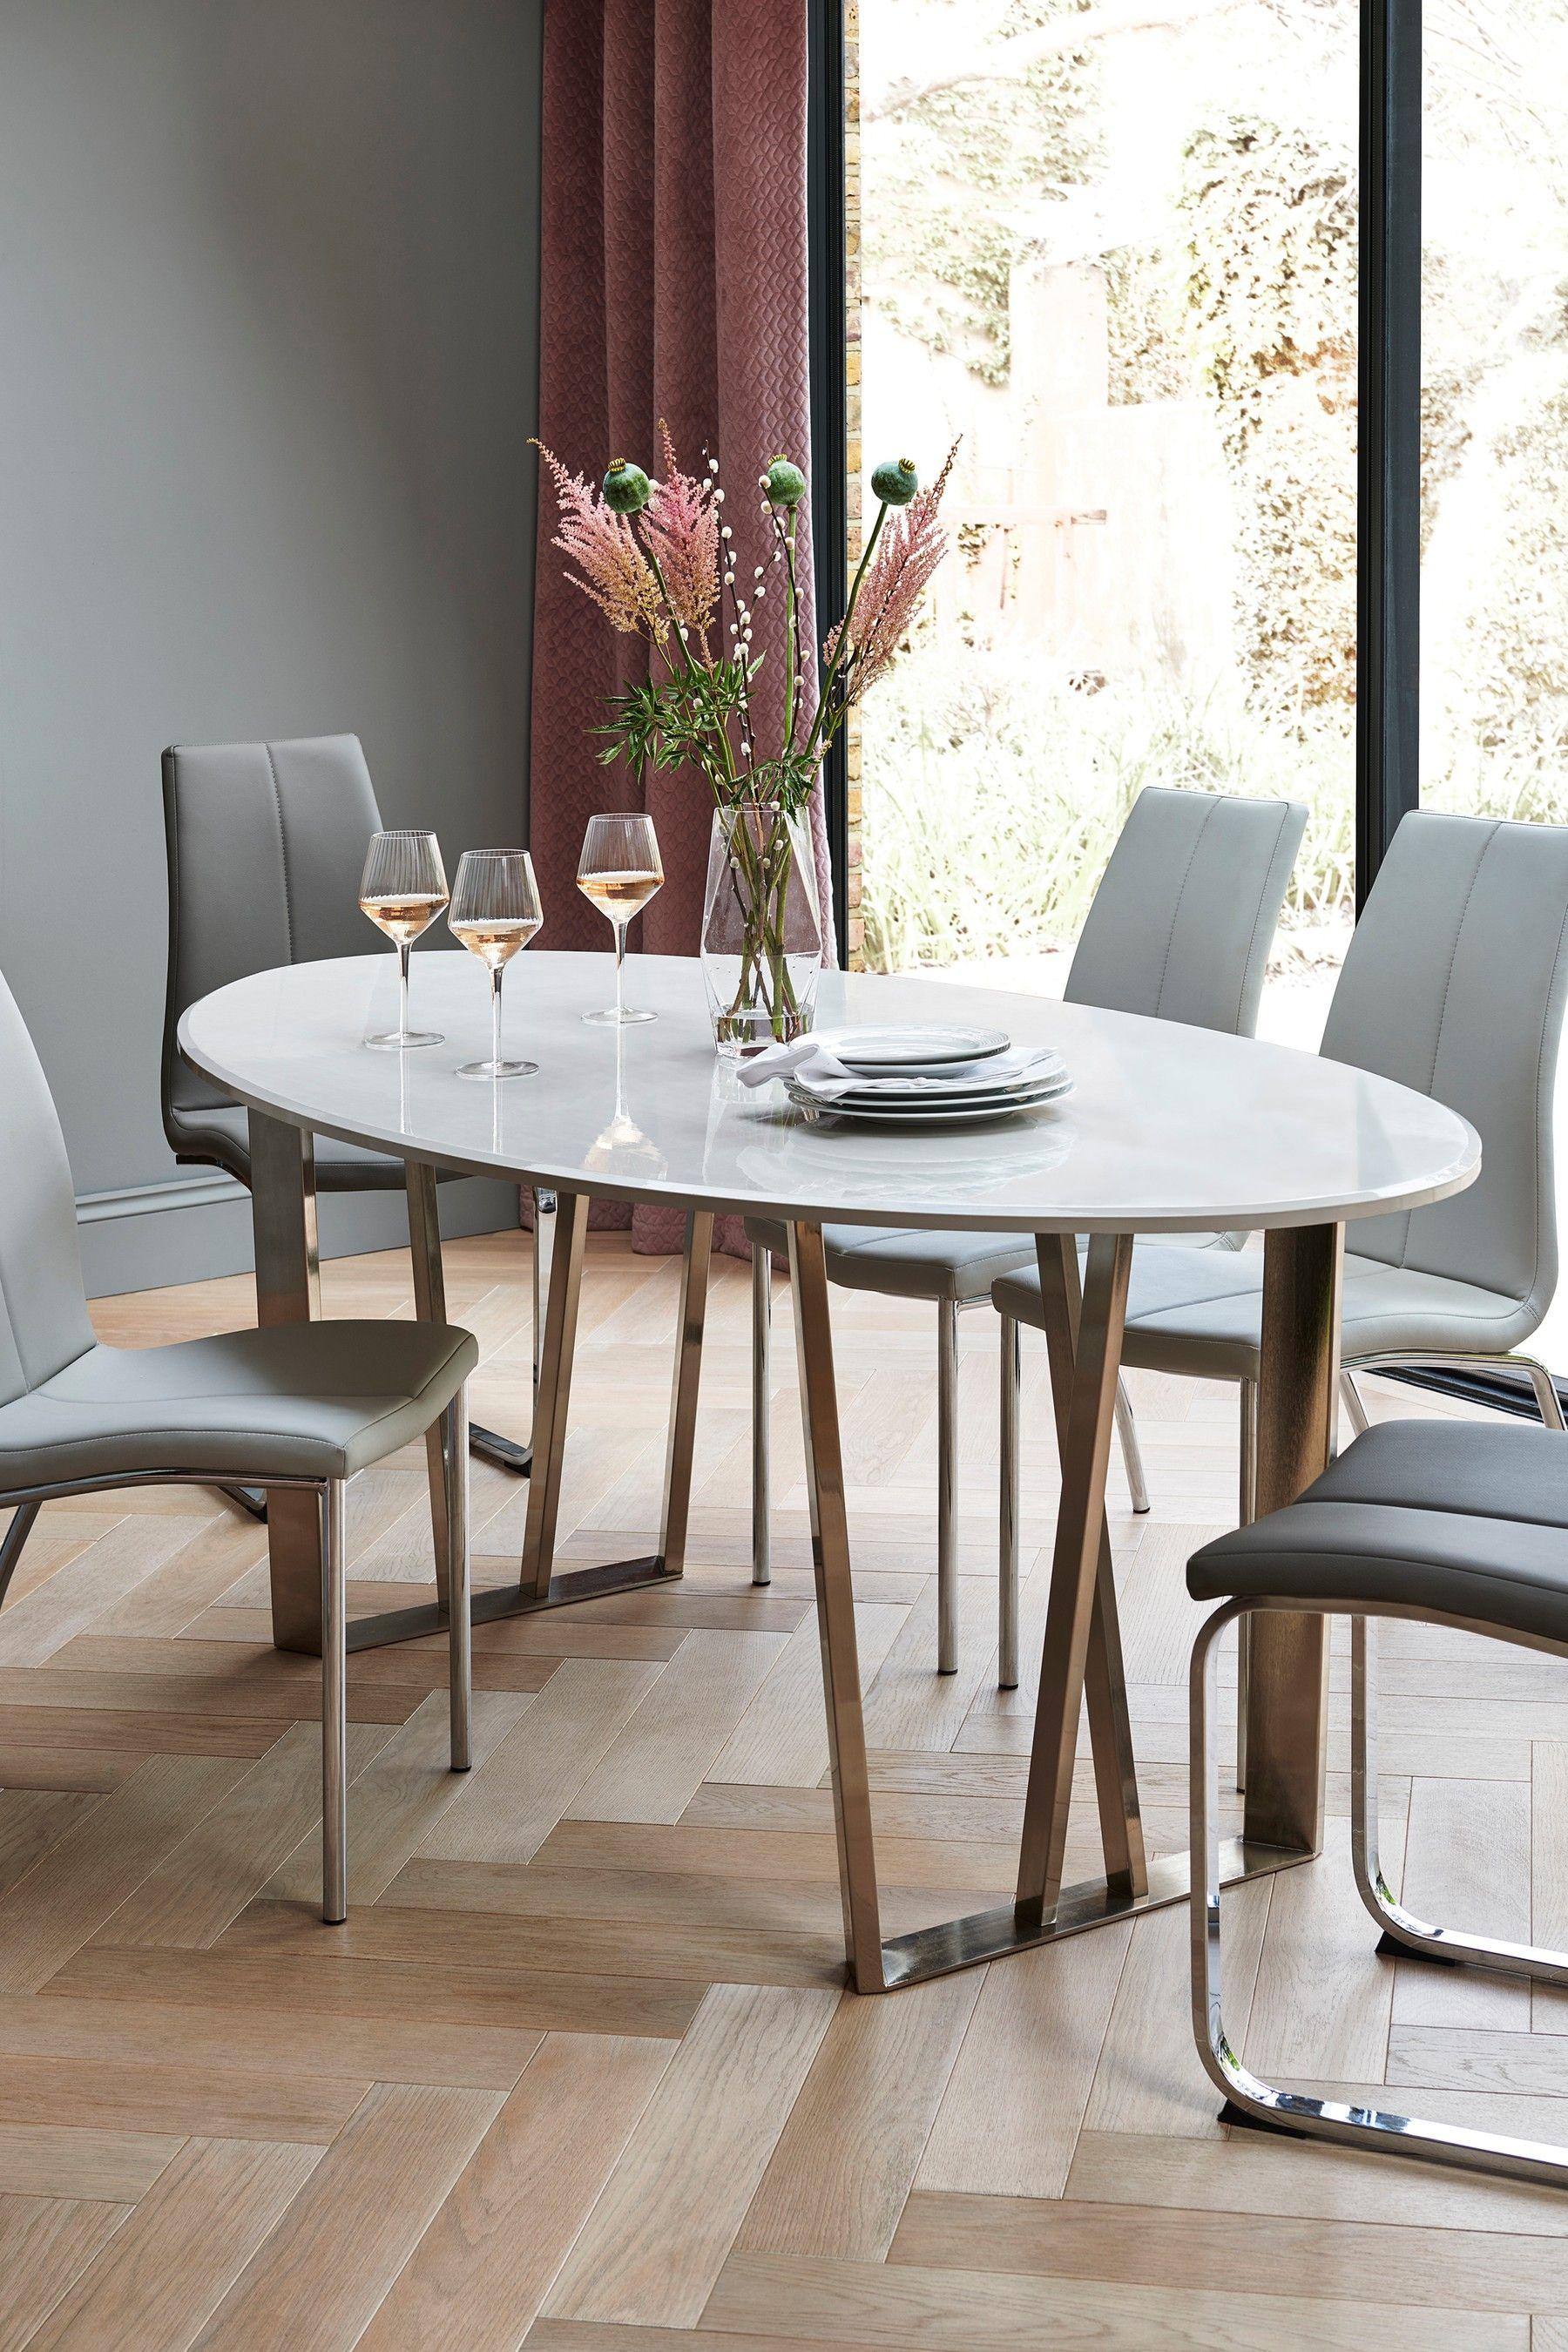 Mode Gloss Oval Dining Table Dining Table In Kitchen Oval